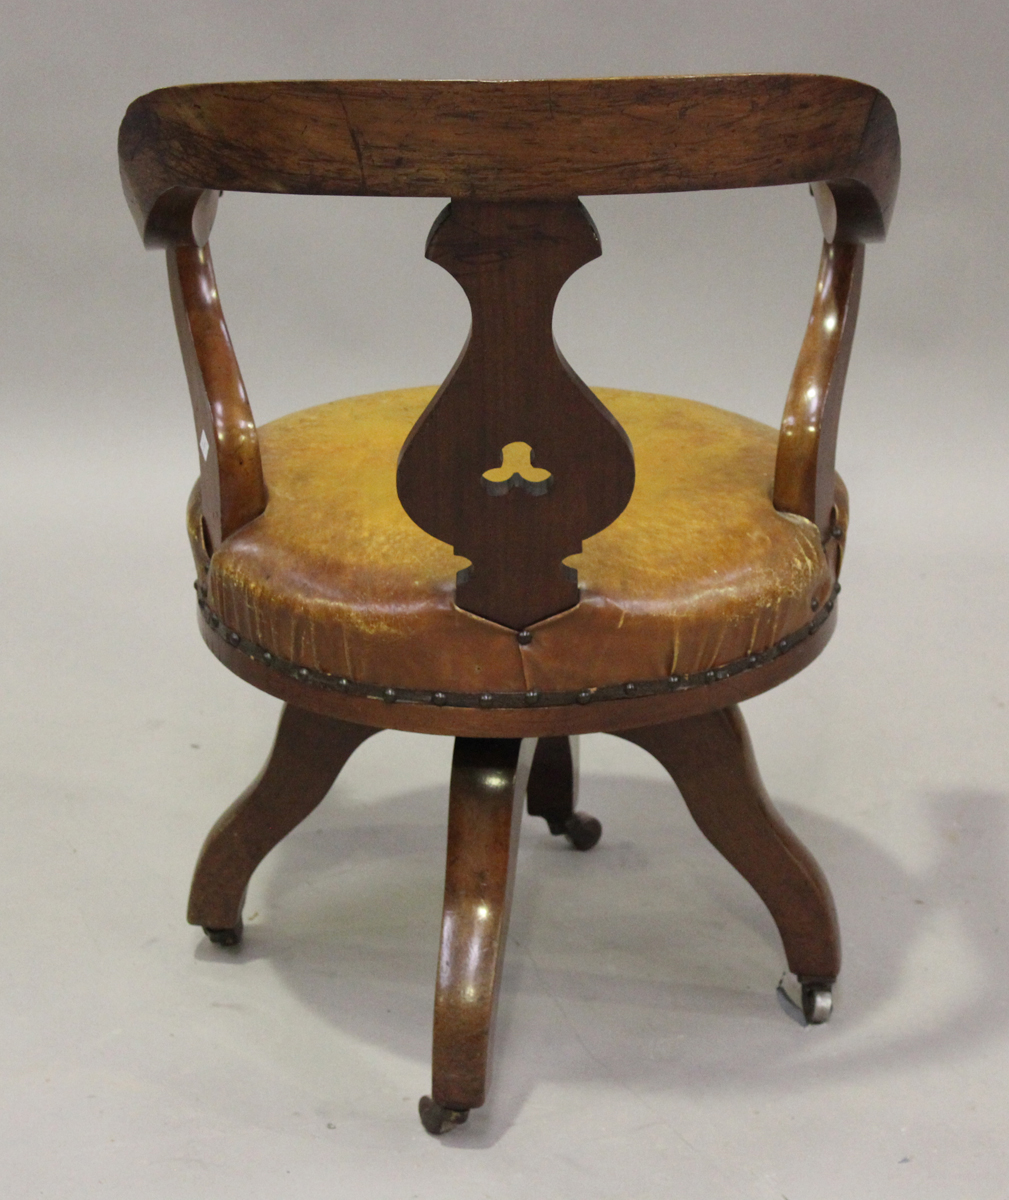 A late Victorian mahogany framed tub back revolving desk chair with a circular brown leather seat, - Image 2 of 4